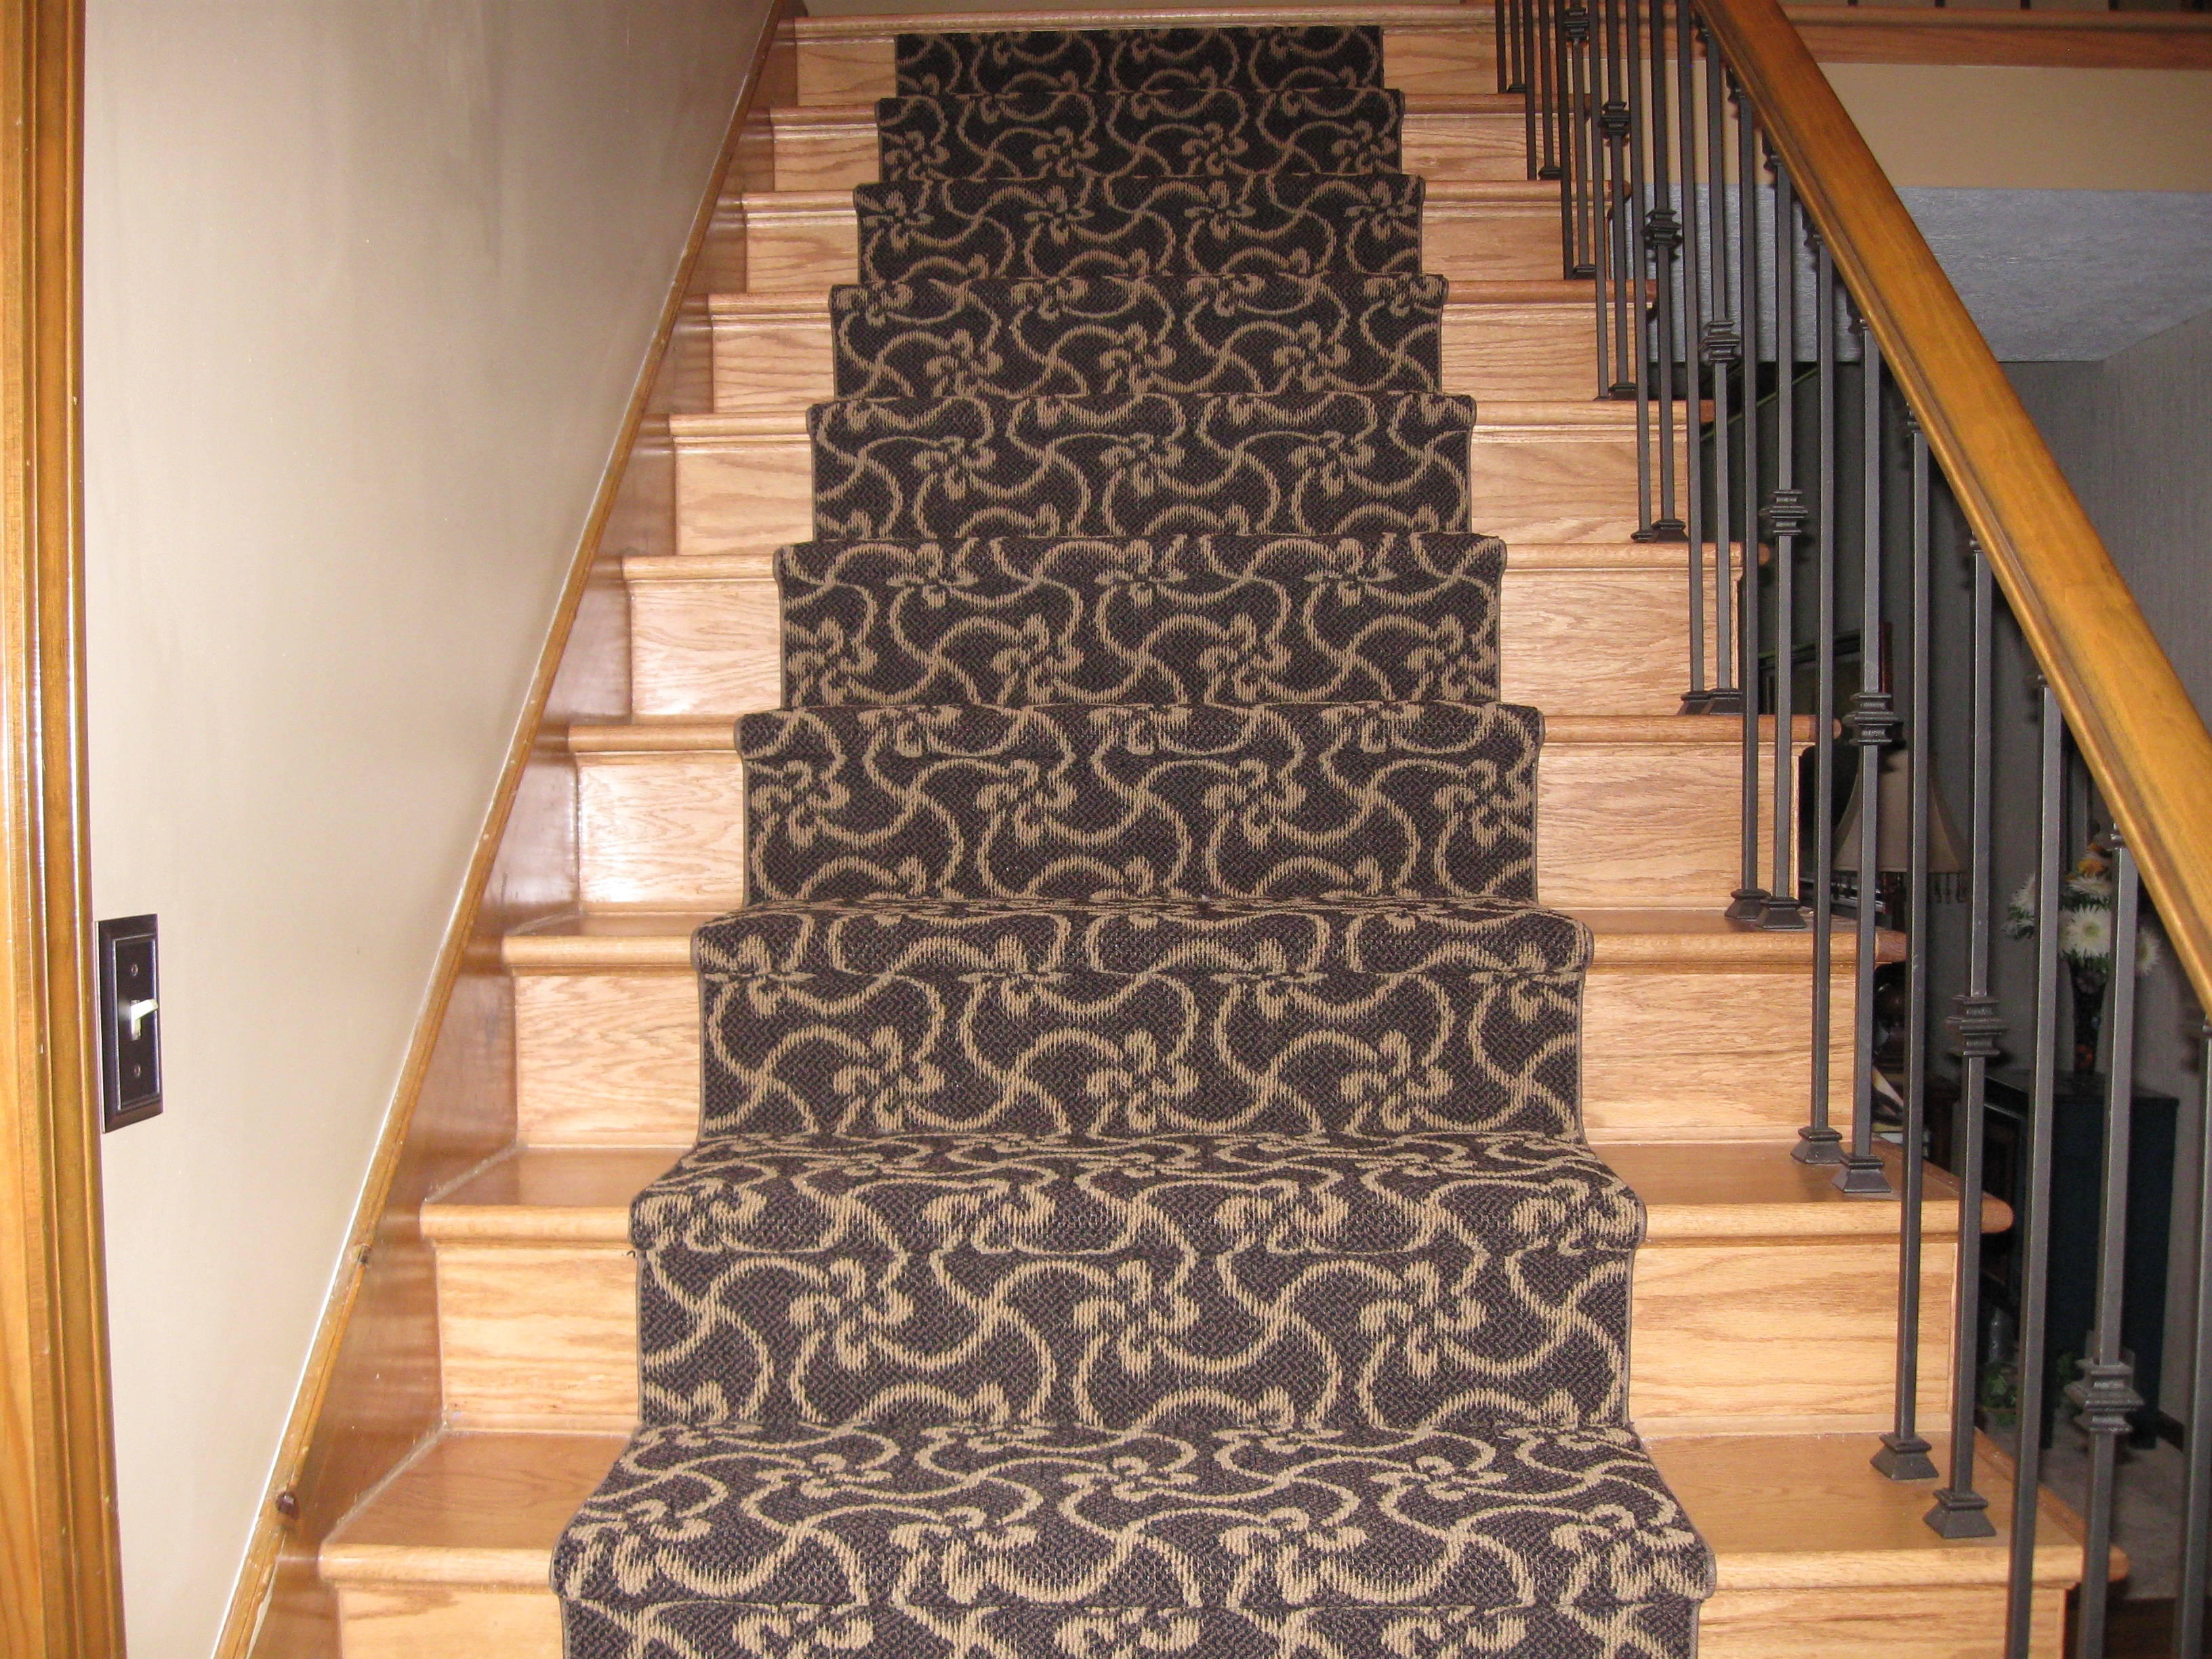 Real Estate Tips Installing Carpet Runner On Wood Stairs For Carpet Treads For Hardwood Stairs (Image 10 of 15)